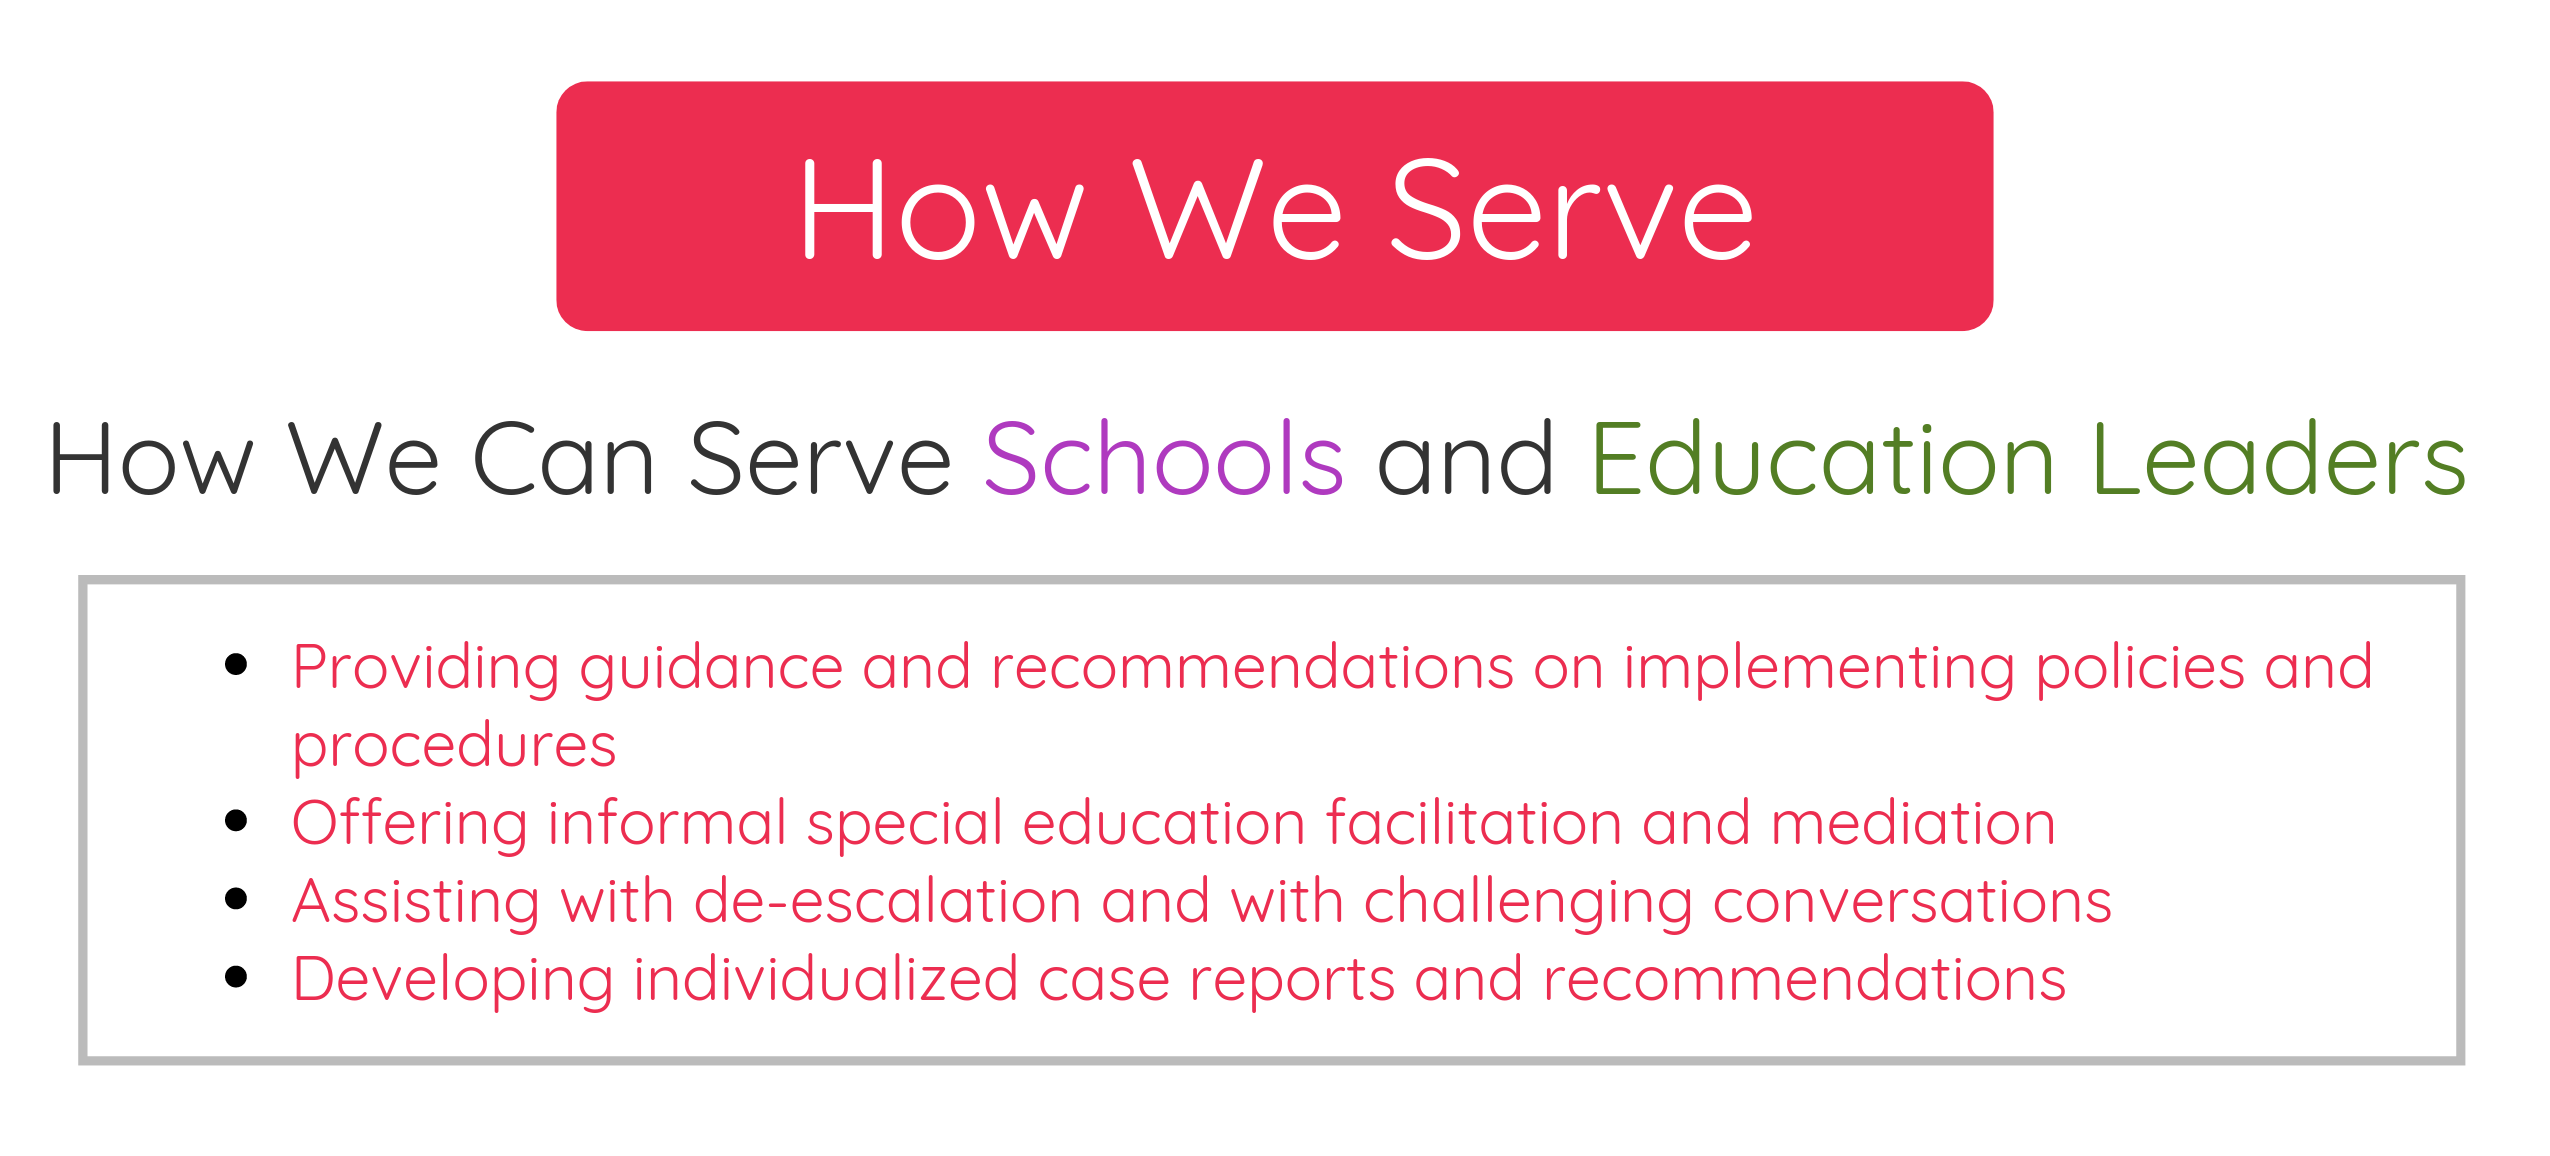 How We Serve: How We Can Serve Schools and Education Leaders. 1. Provide guidance and recommendations on implementing policies and procedures. 2. Offer informal special education facilitation and mediation. 3. Assist with de-escalation and with challenging conversations. 4. Develop individualized case reports and recommendations to schools.